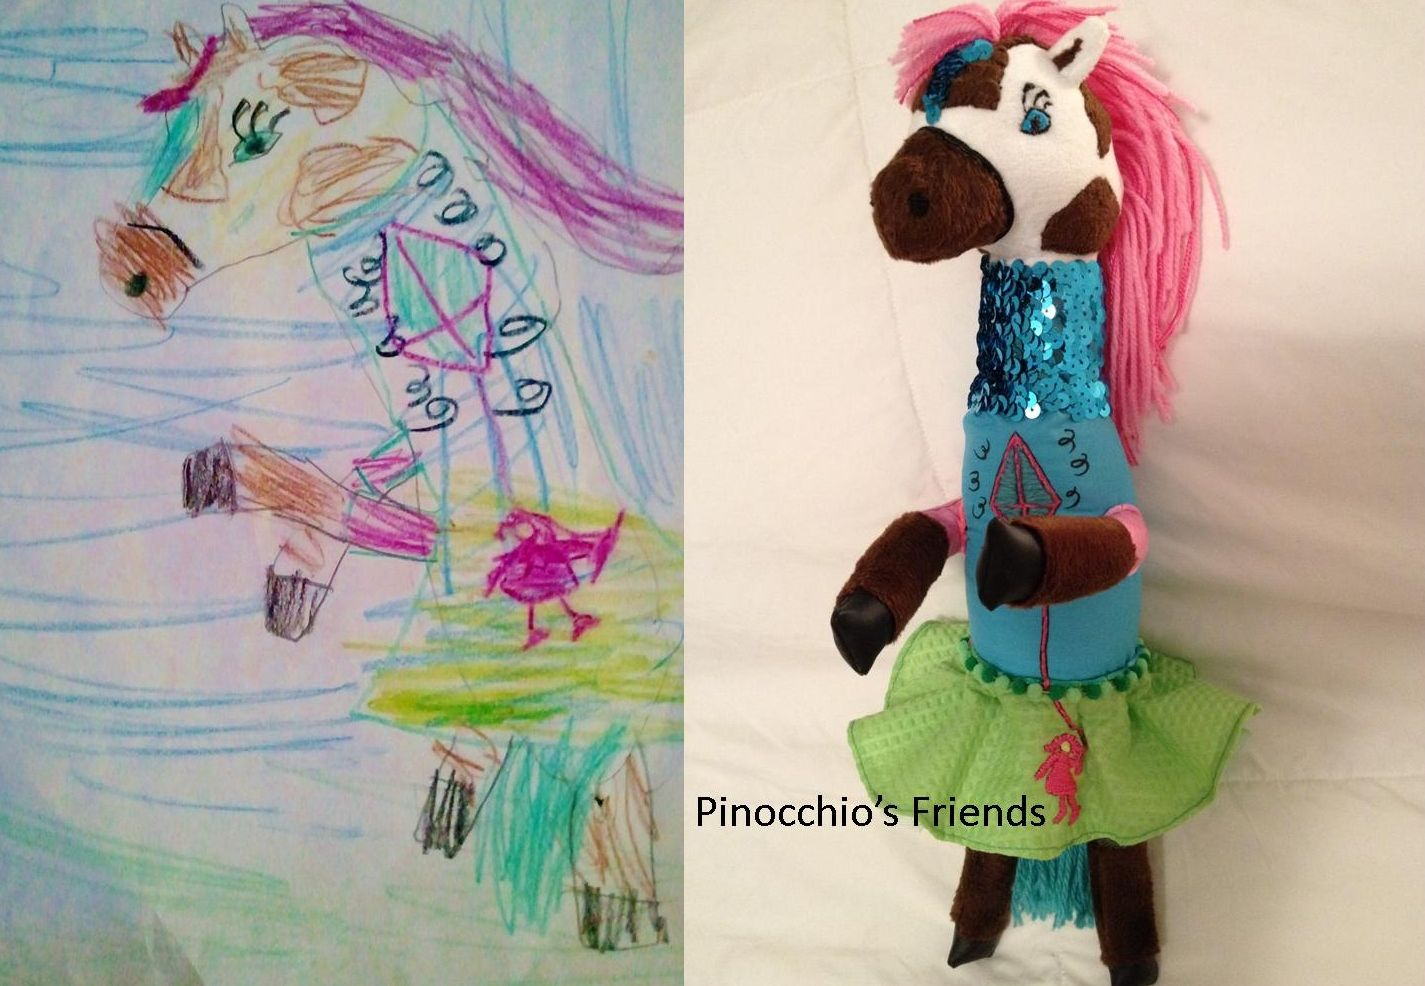 awesome toy company decided to make children's drawings into weird plush toys